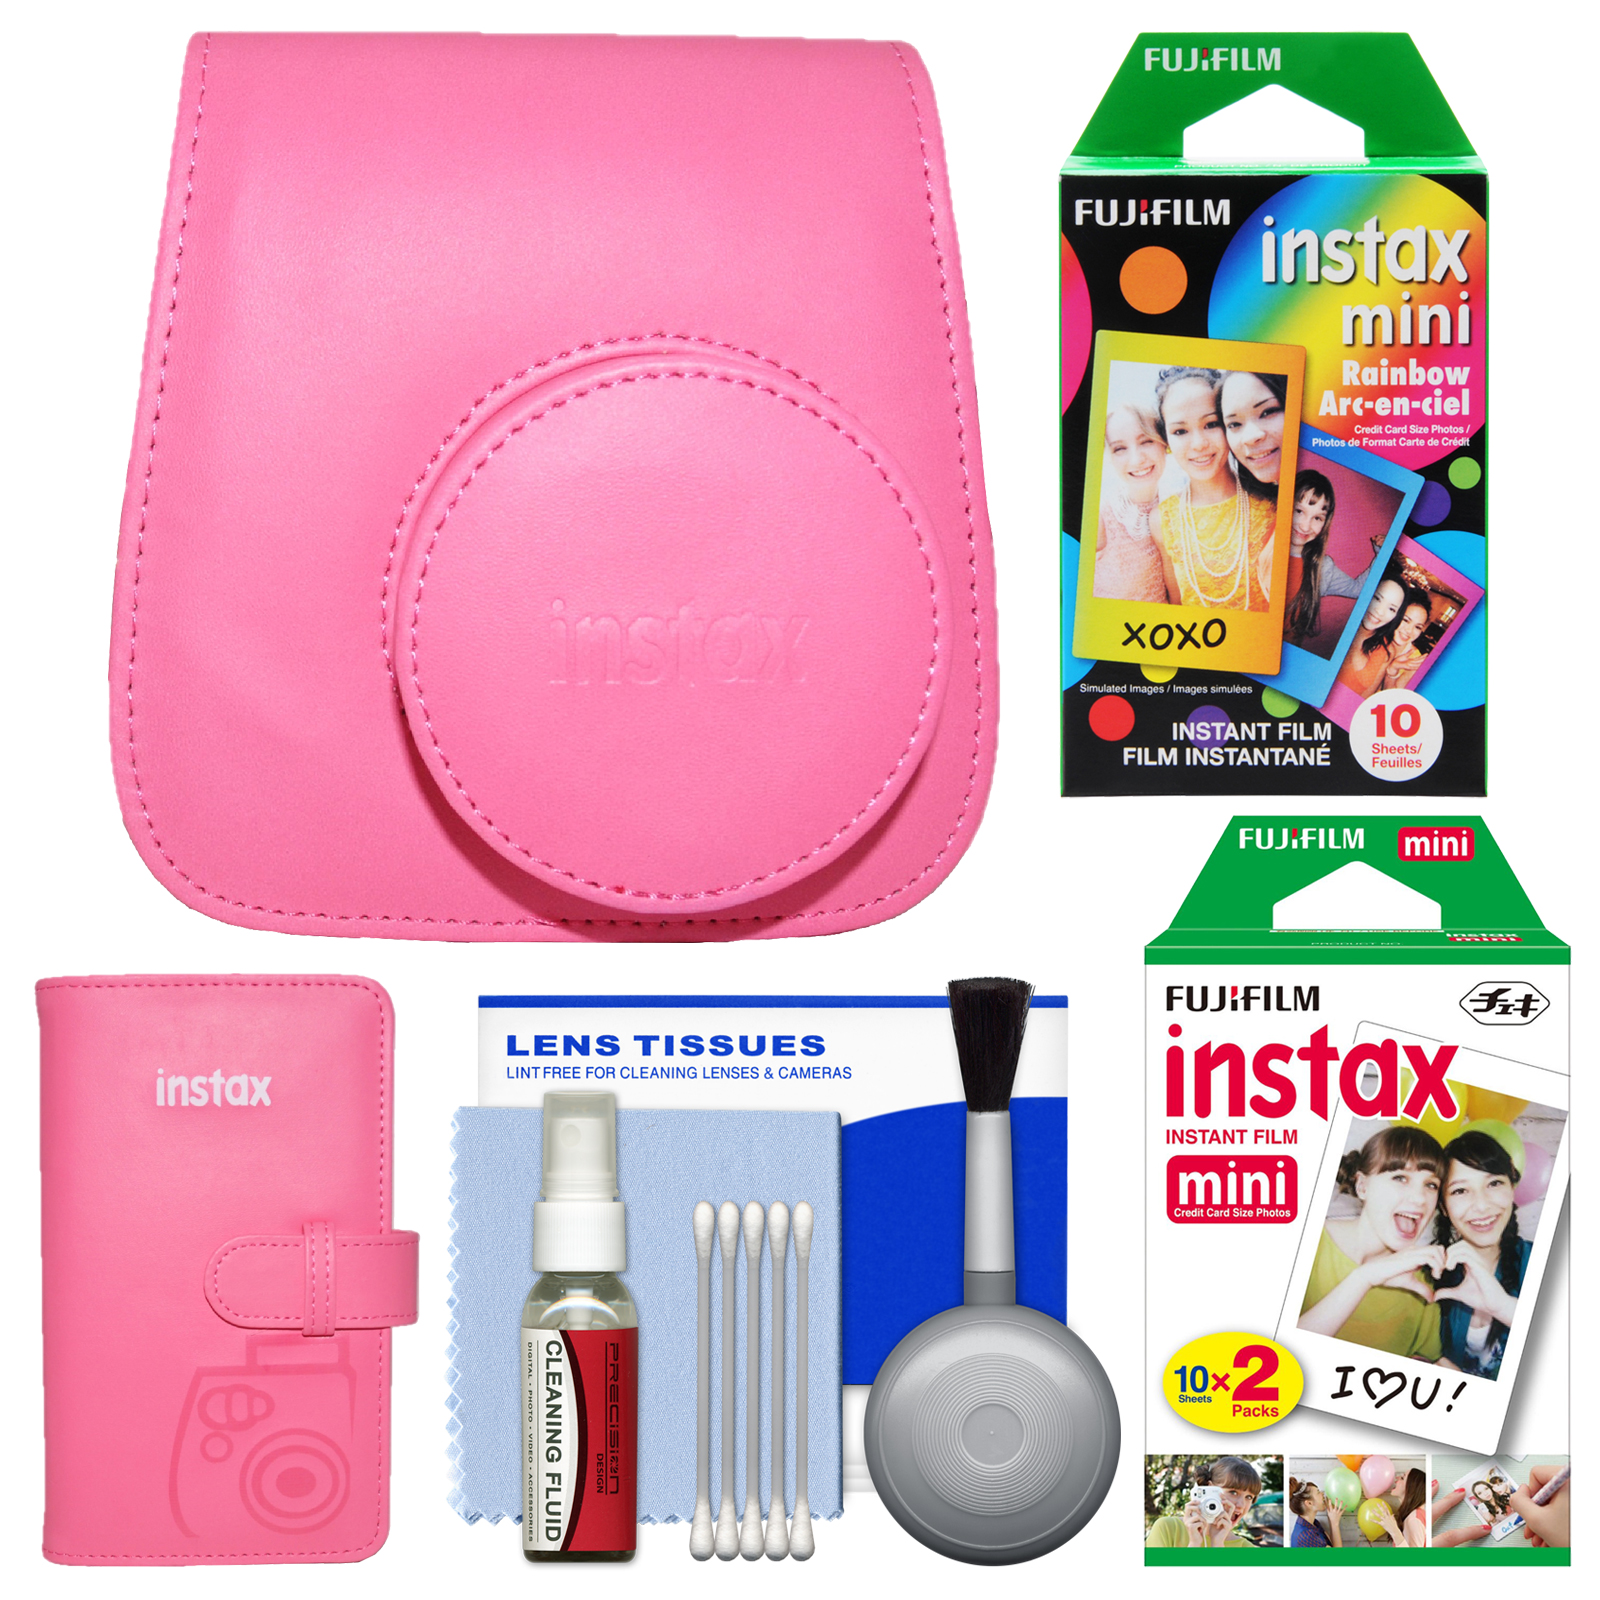 Fujifilm Groovy Case for Instax Mini 9 Instant Camera (Flamingo Pink) with Photo Album + 20 Twin & 10 Rainbow Prints + Cleaning Kit